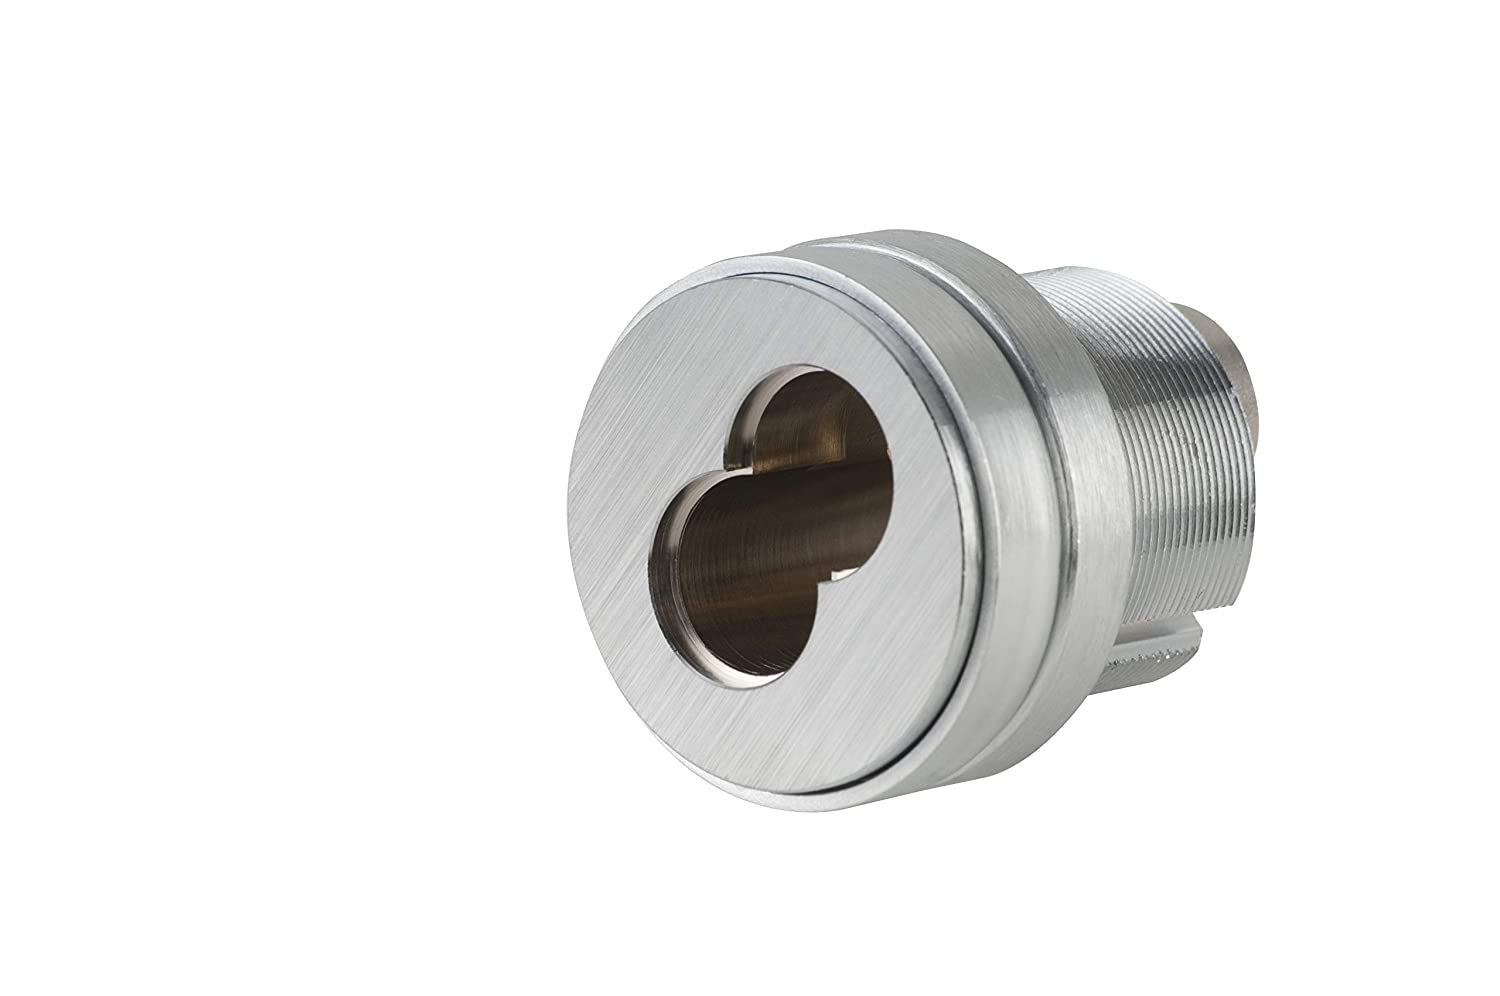 Schlage Commercial 80102626 Small Format Interchangeable Core Mortise Cylinder with Standard Cam; Compression Ring; and 1/4